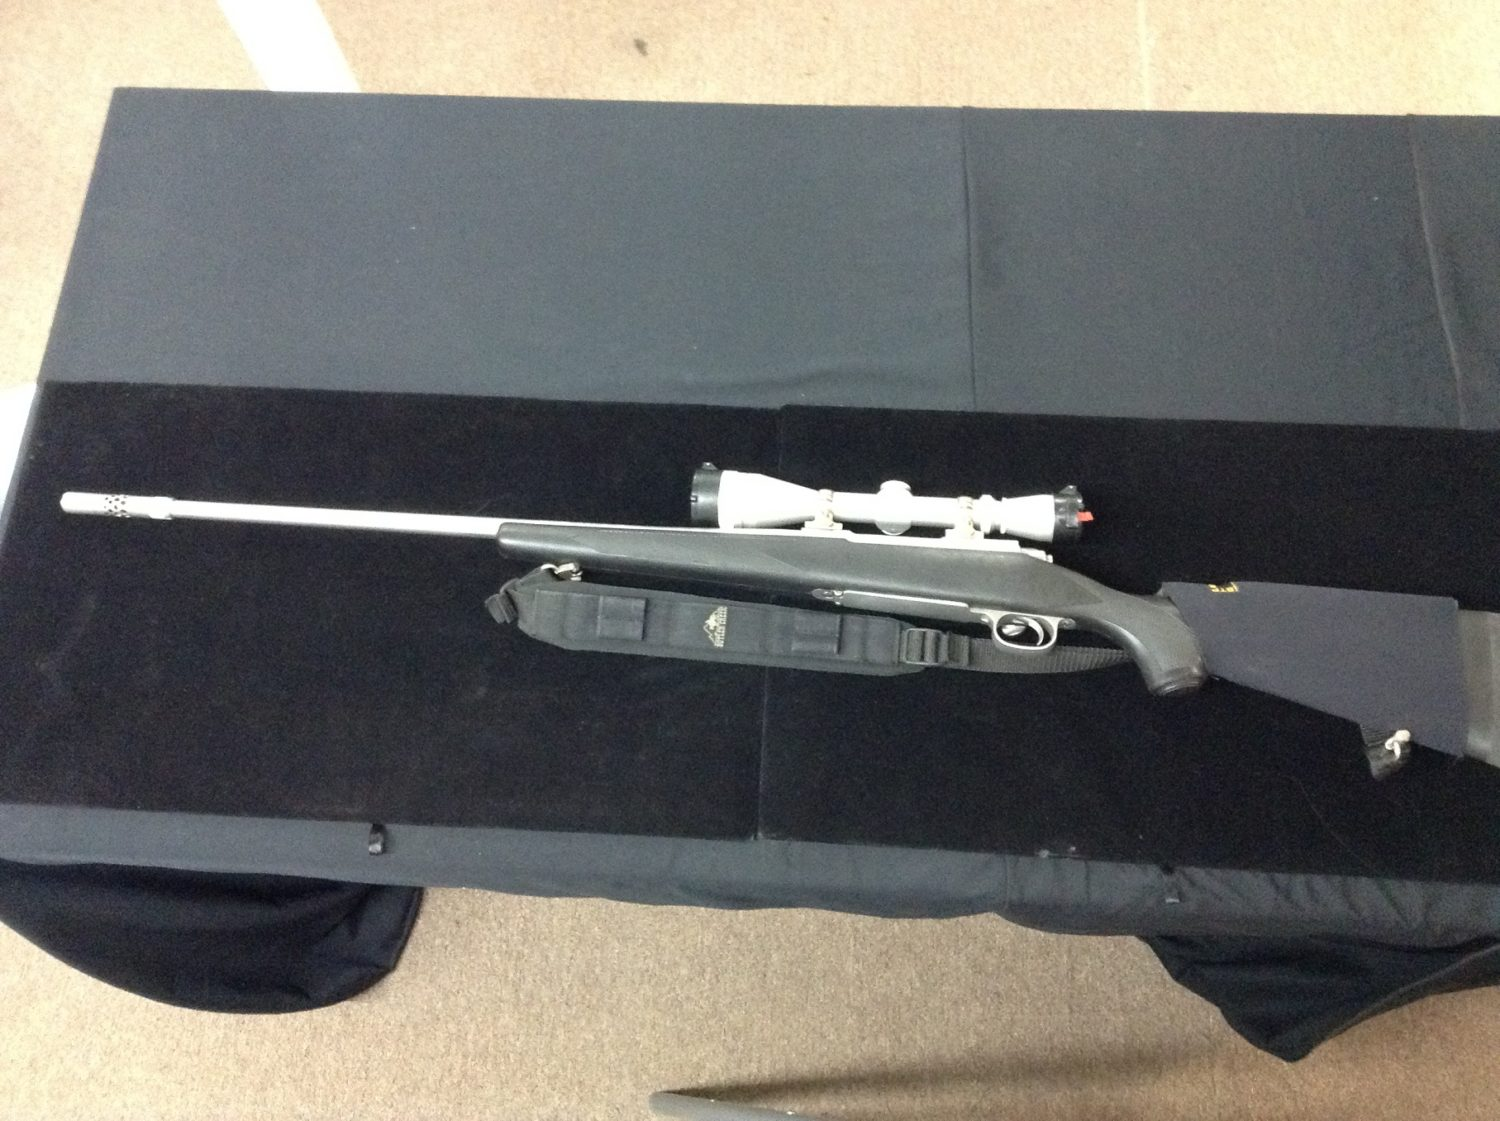 Winchester 70 7mm Rem Mag Rifle - Cash in a Flash Pawn Shop